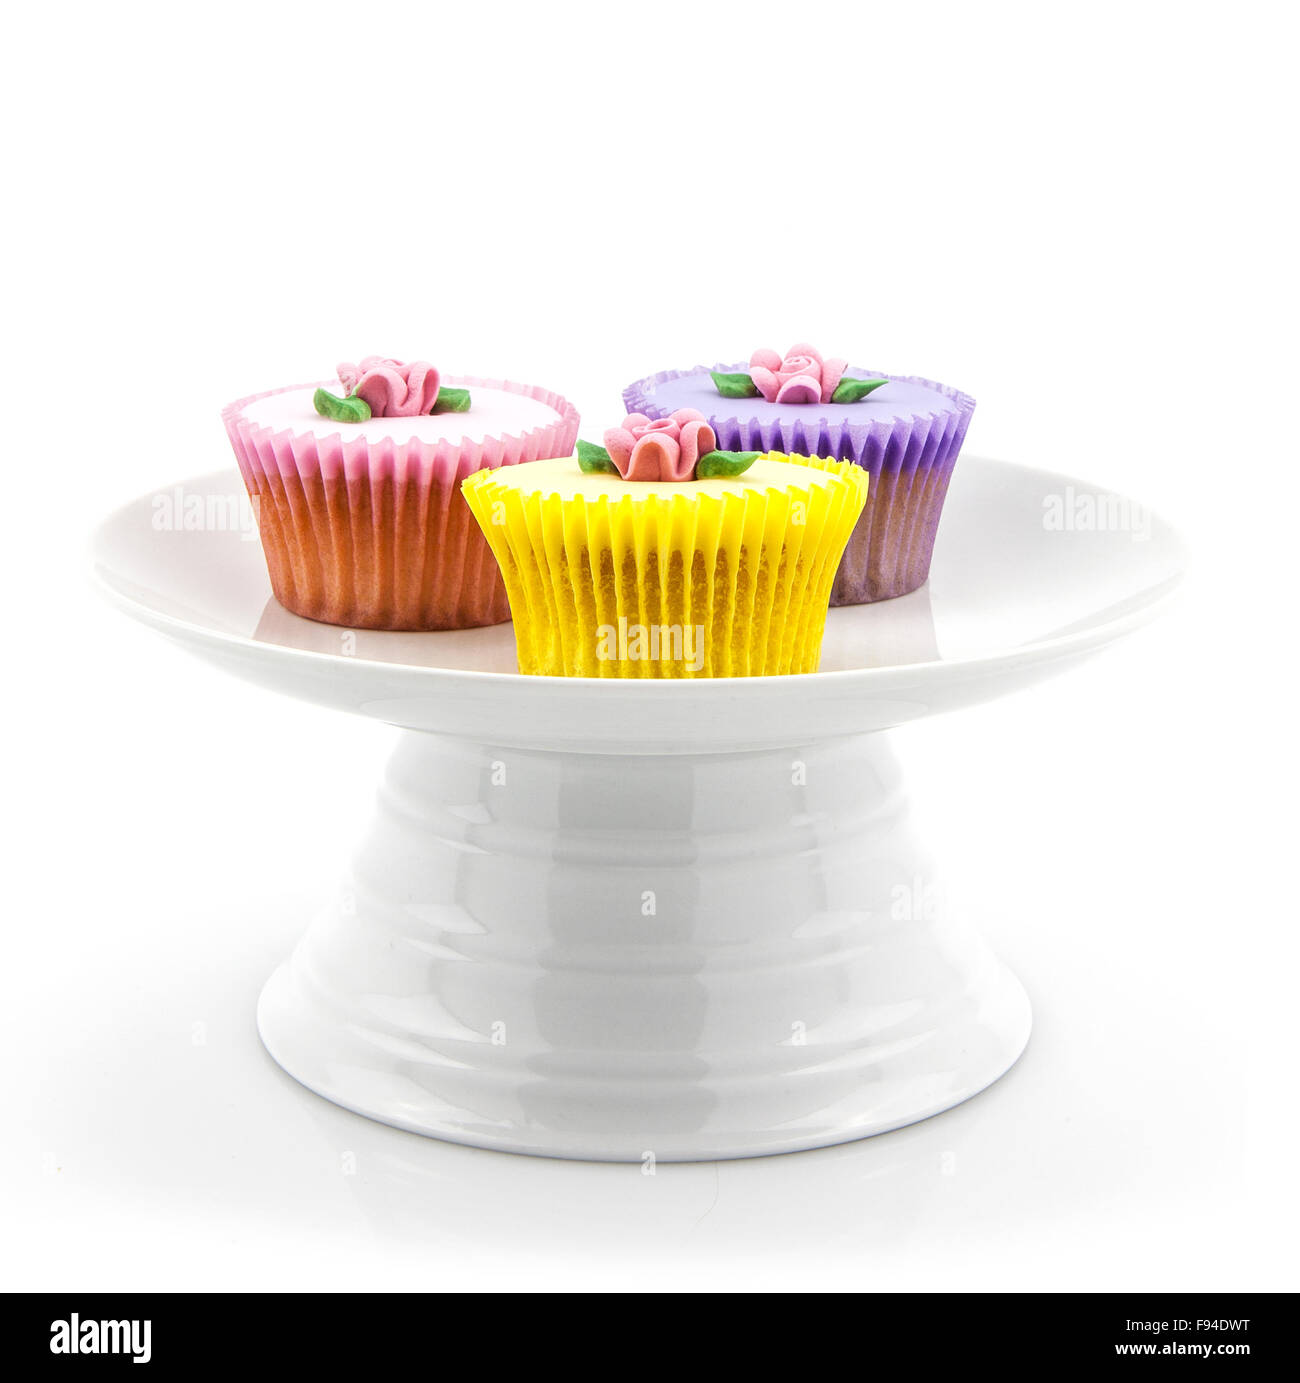 Cupcake selection on white china stand - Stock Image